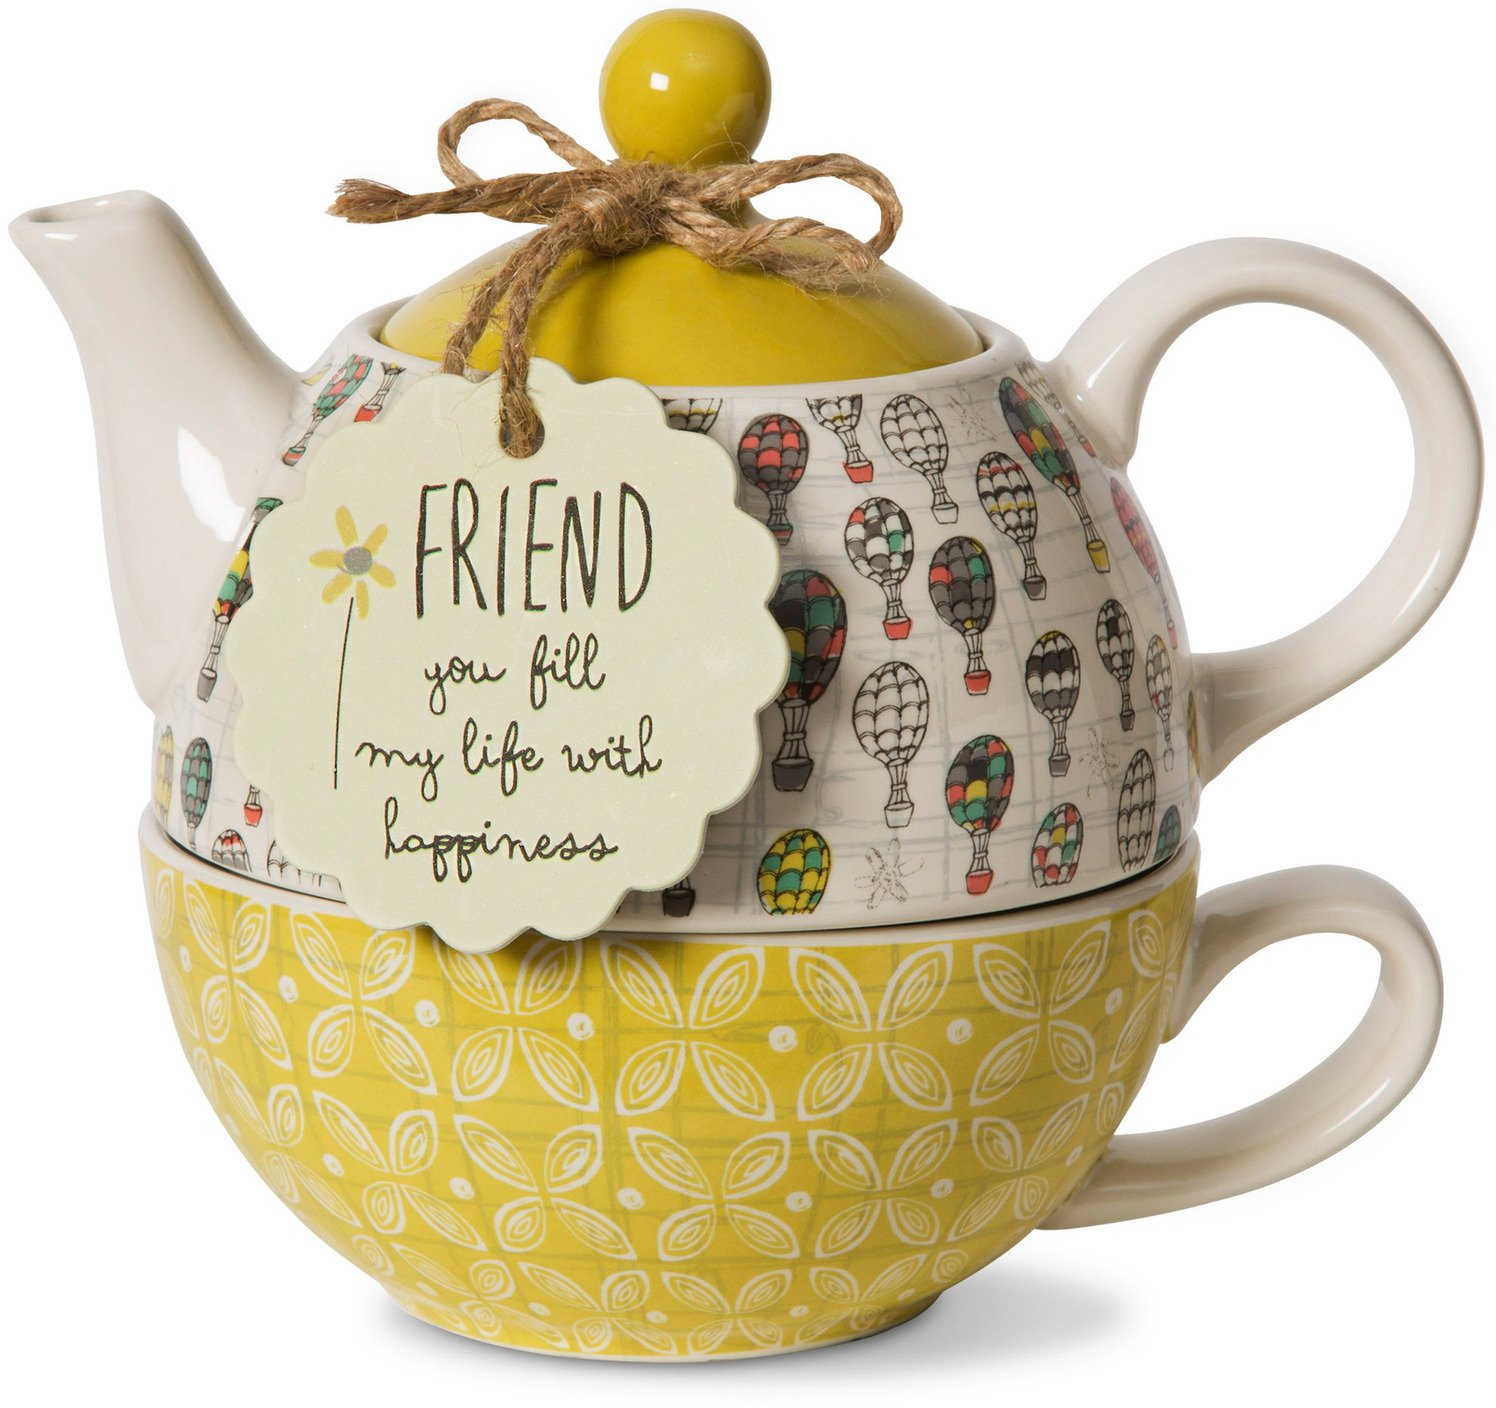 Pavilion Gift Company Friend Ceramic Teapot and Cup for One, 15 oz, Multicolored 74067